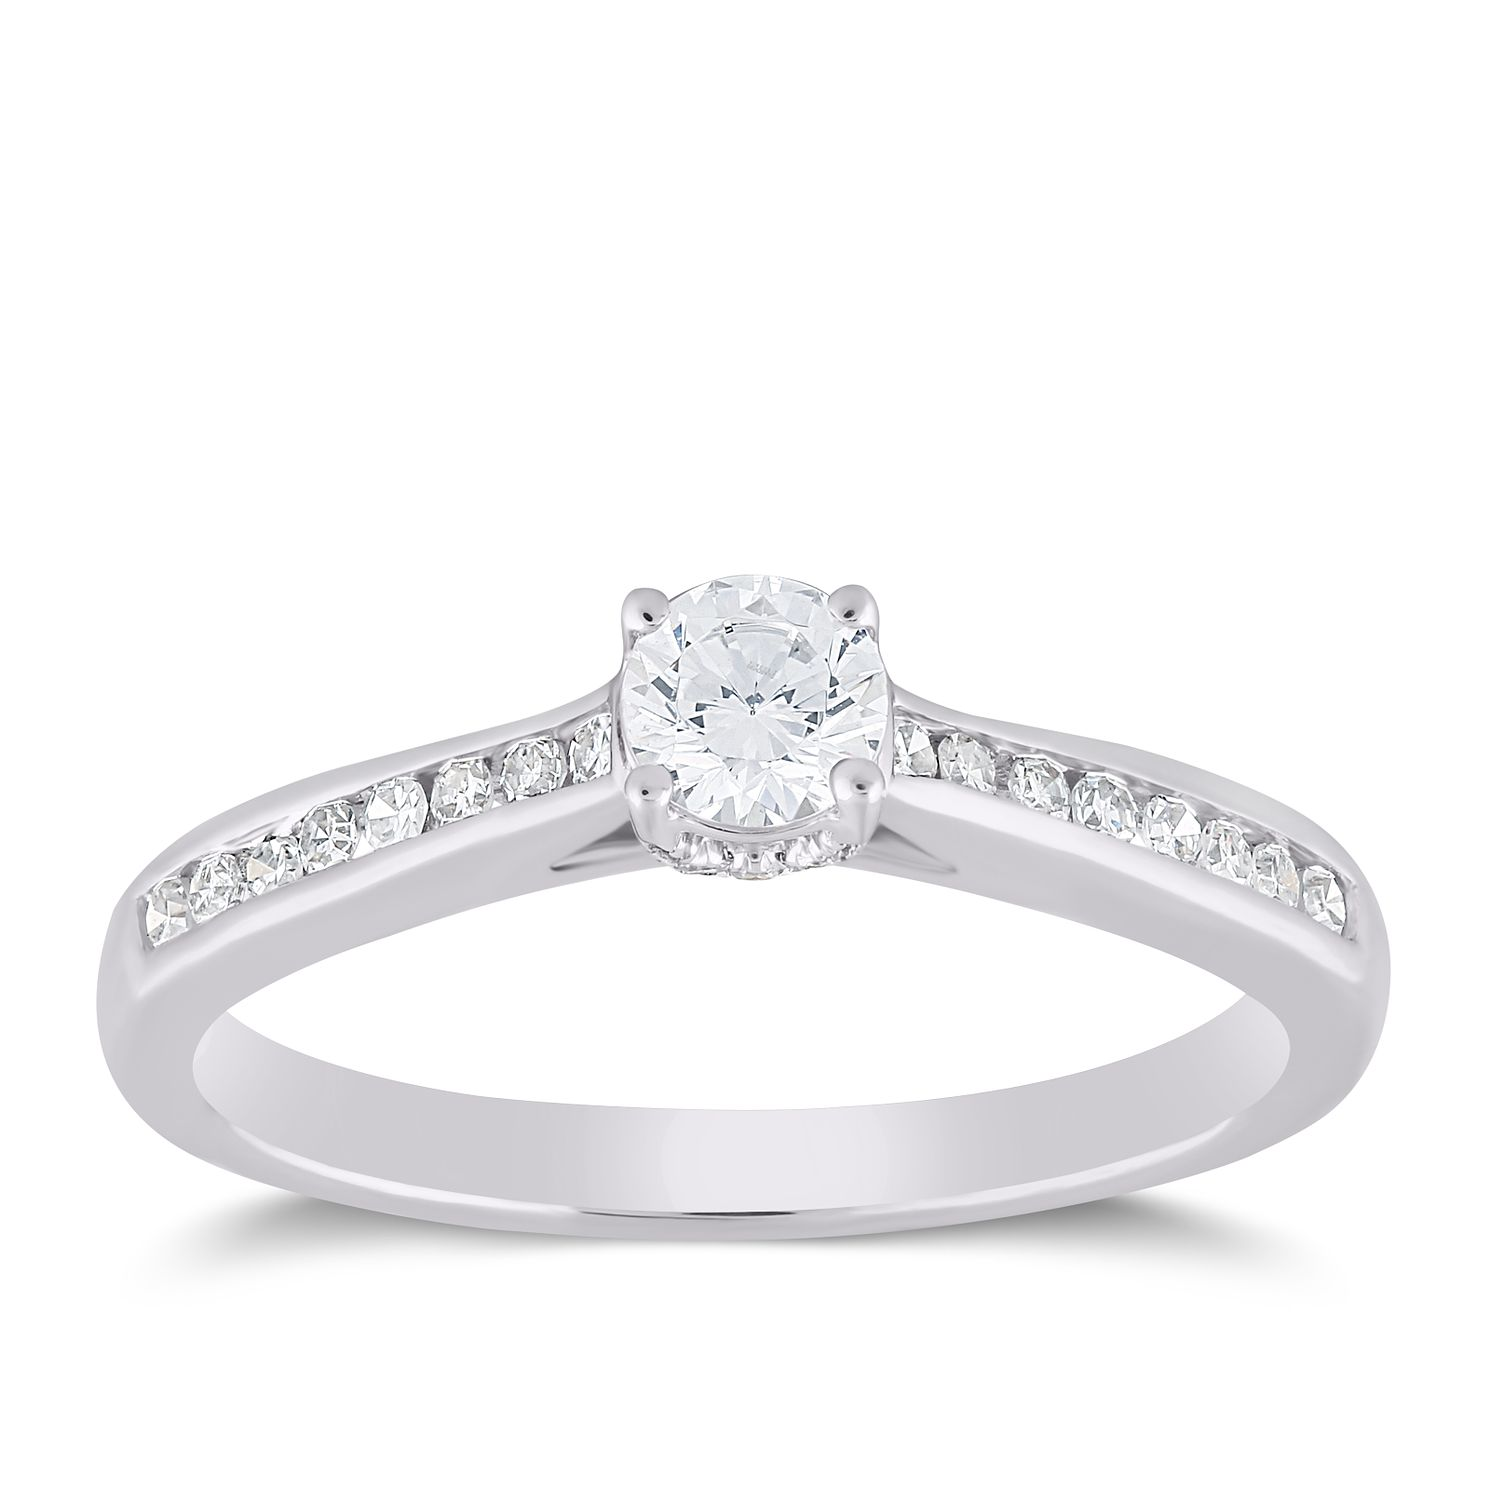 18ct White Gold 2/5ct Forever Diamond Ring - Product number 6017363